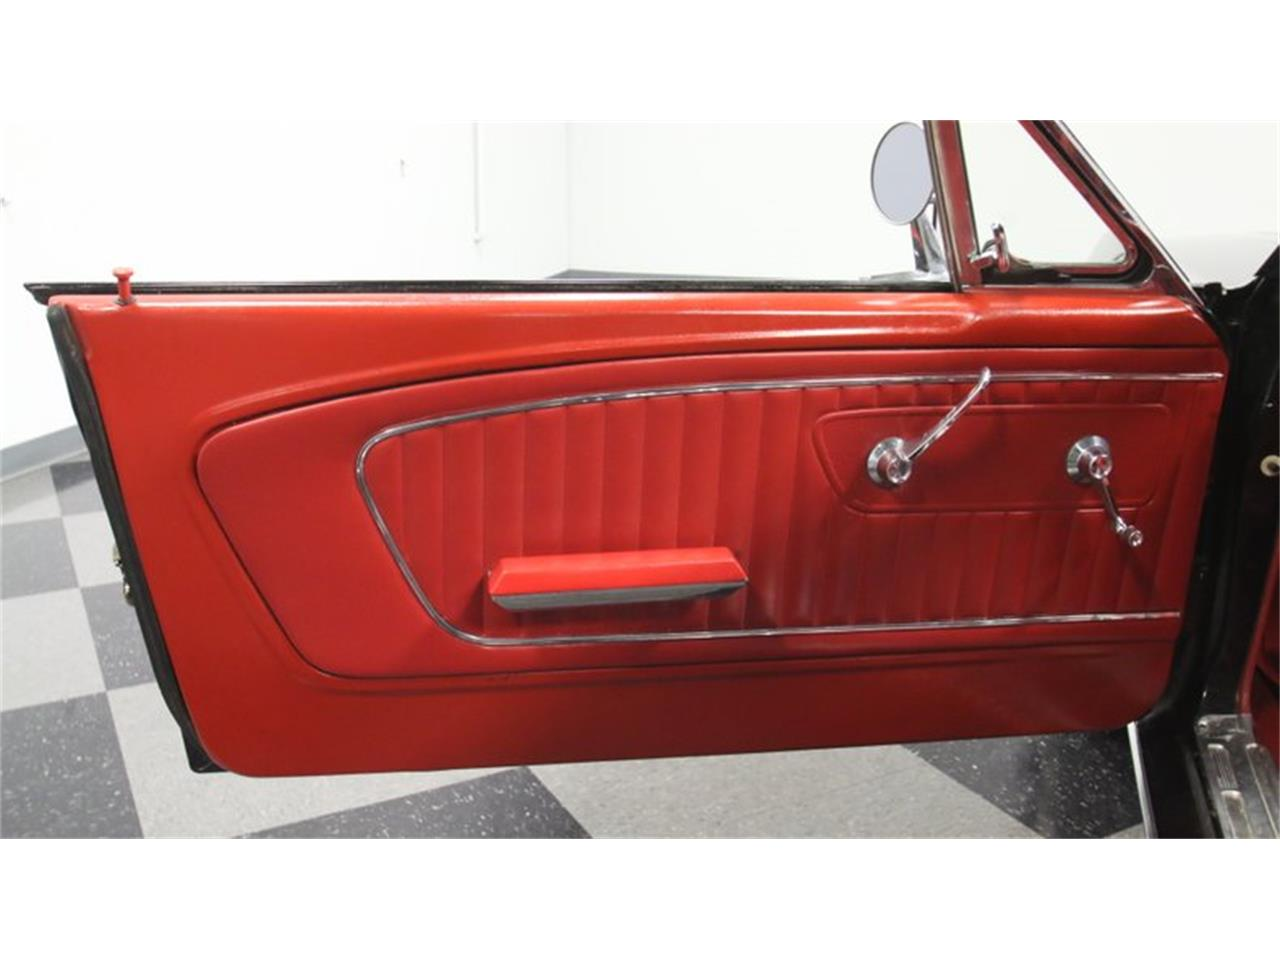 Large Picture of Classic '64 Ford Mustang located in Lithia Springs Georgia - $28,995.00 - QA2K